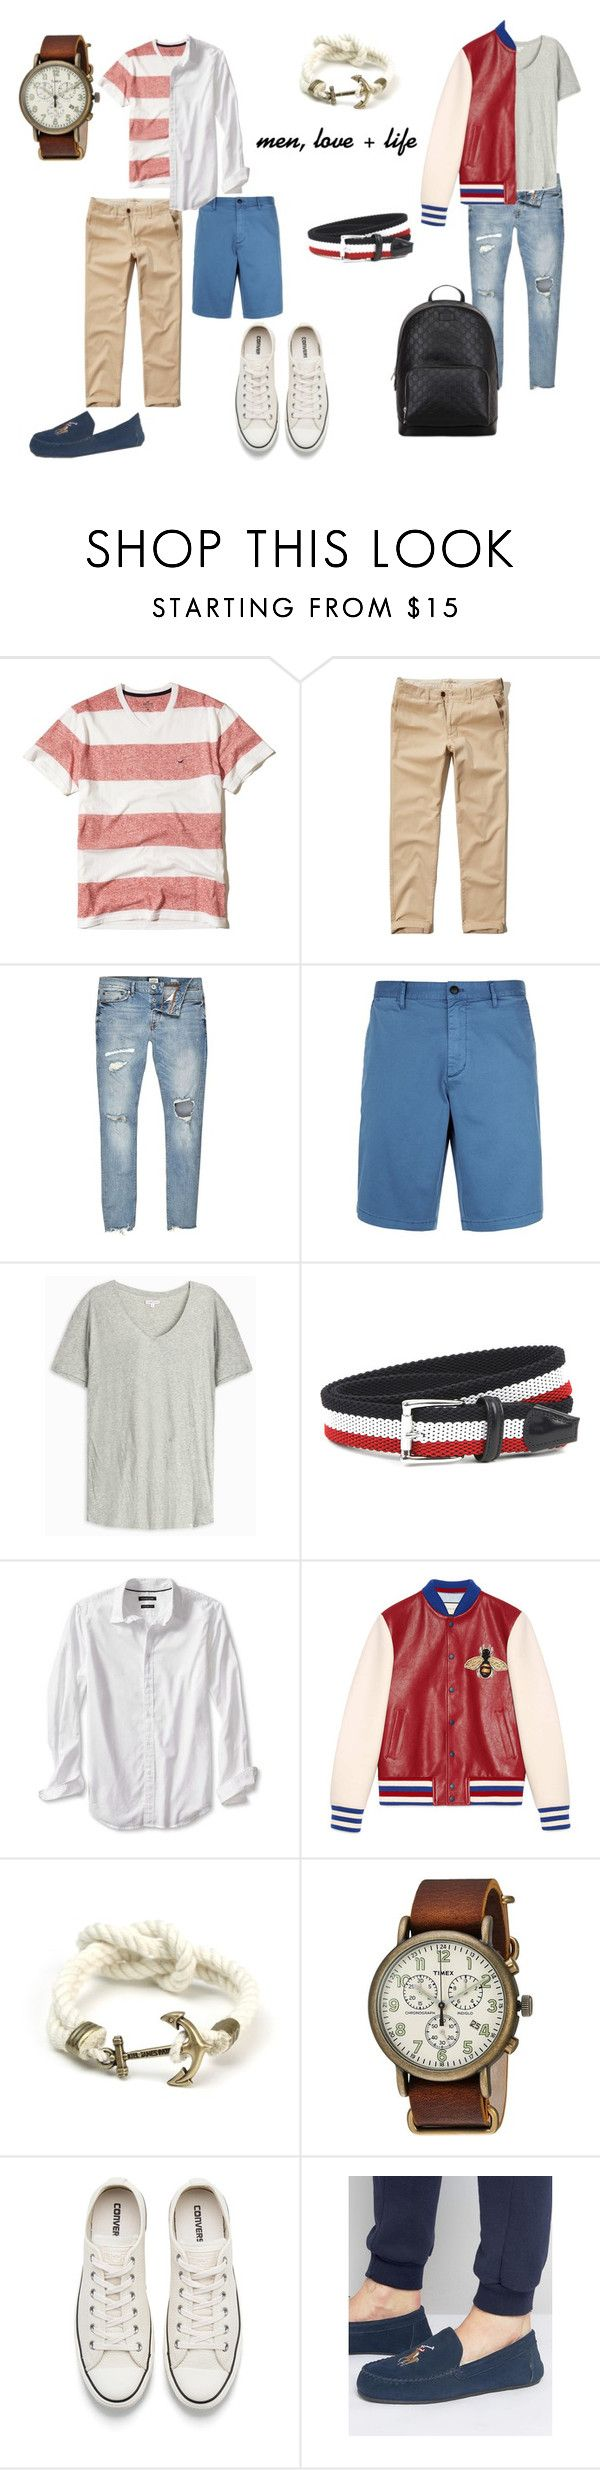 """""""summer vacation men's look"""" by polina-saleychuk on Polyvore featuring Hollister Co., River Island, Armani Jeans, Orlebar Brown, J.W. Anderson, Banana Republic, Gucci, Timex, Converse и Ralph Lauren"""